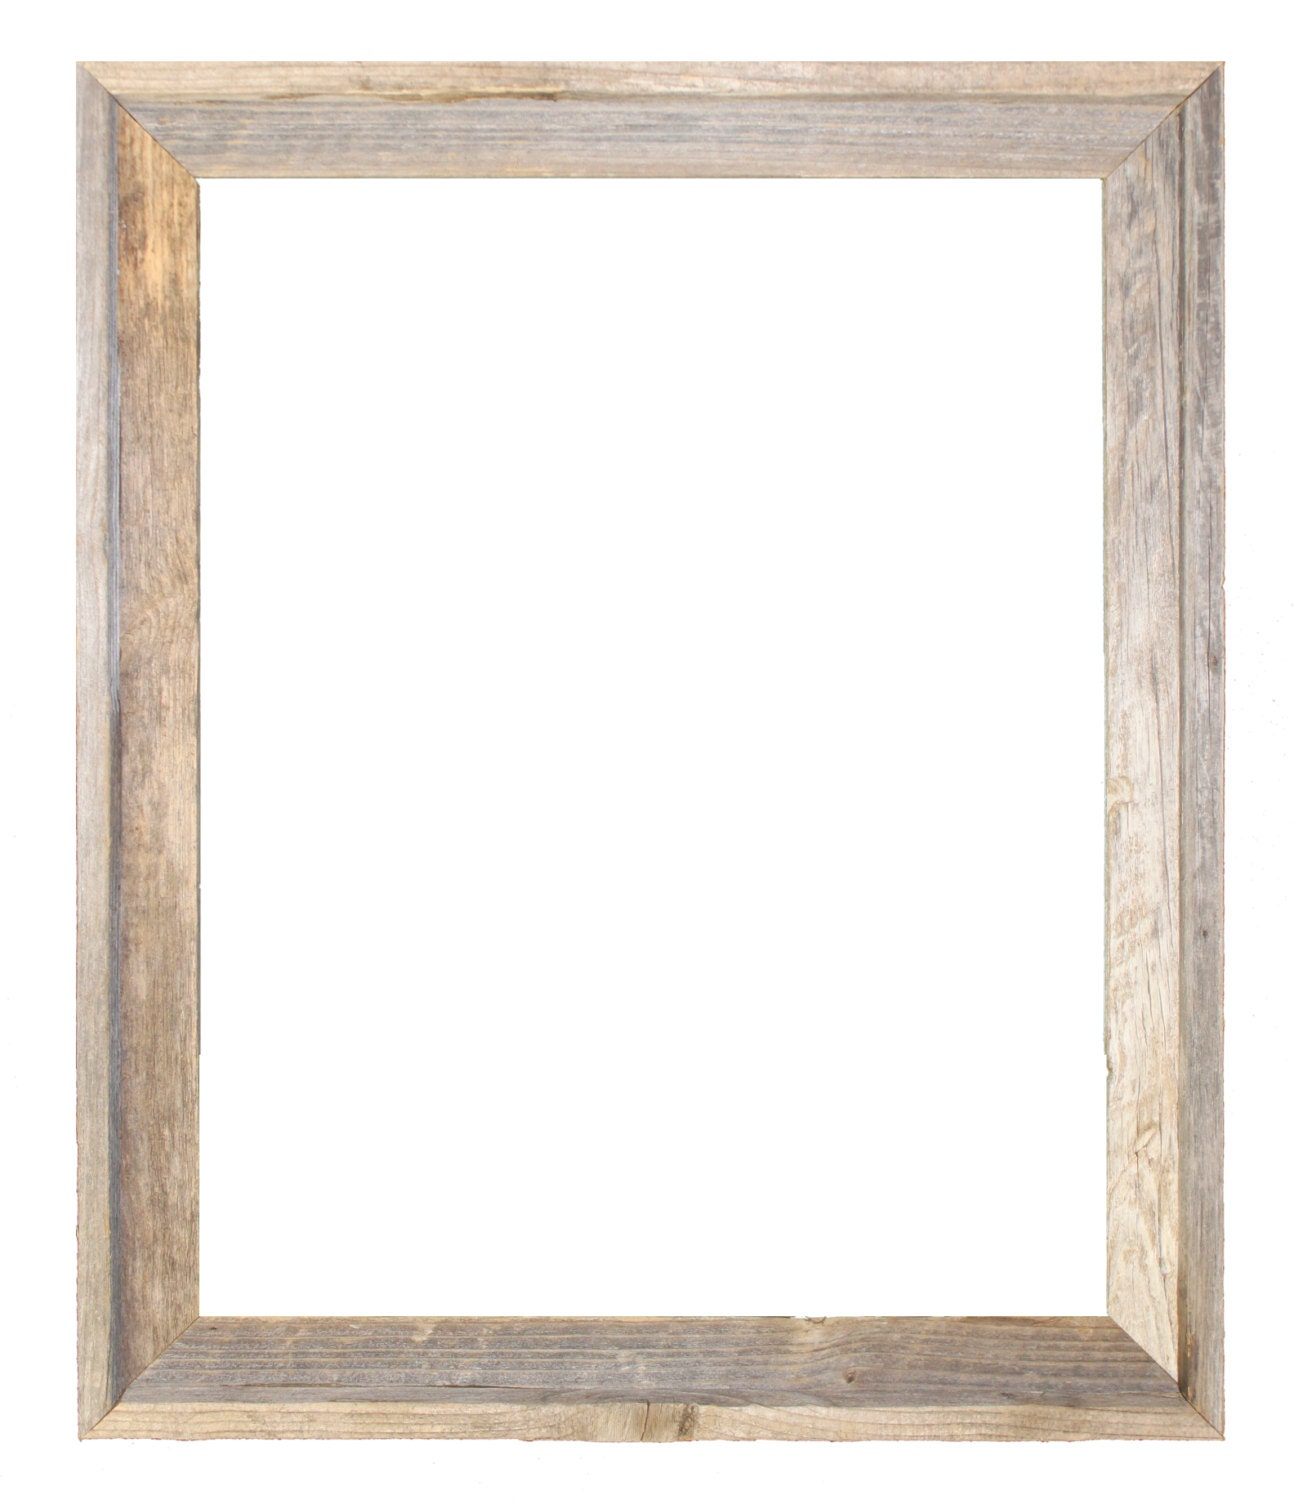 Wood Photo Frames : 24x30 Picture Frames Barnwood Reclaimed Wood by RusticDecorFrames